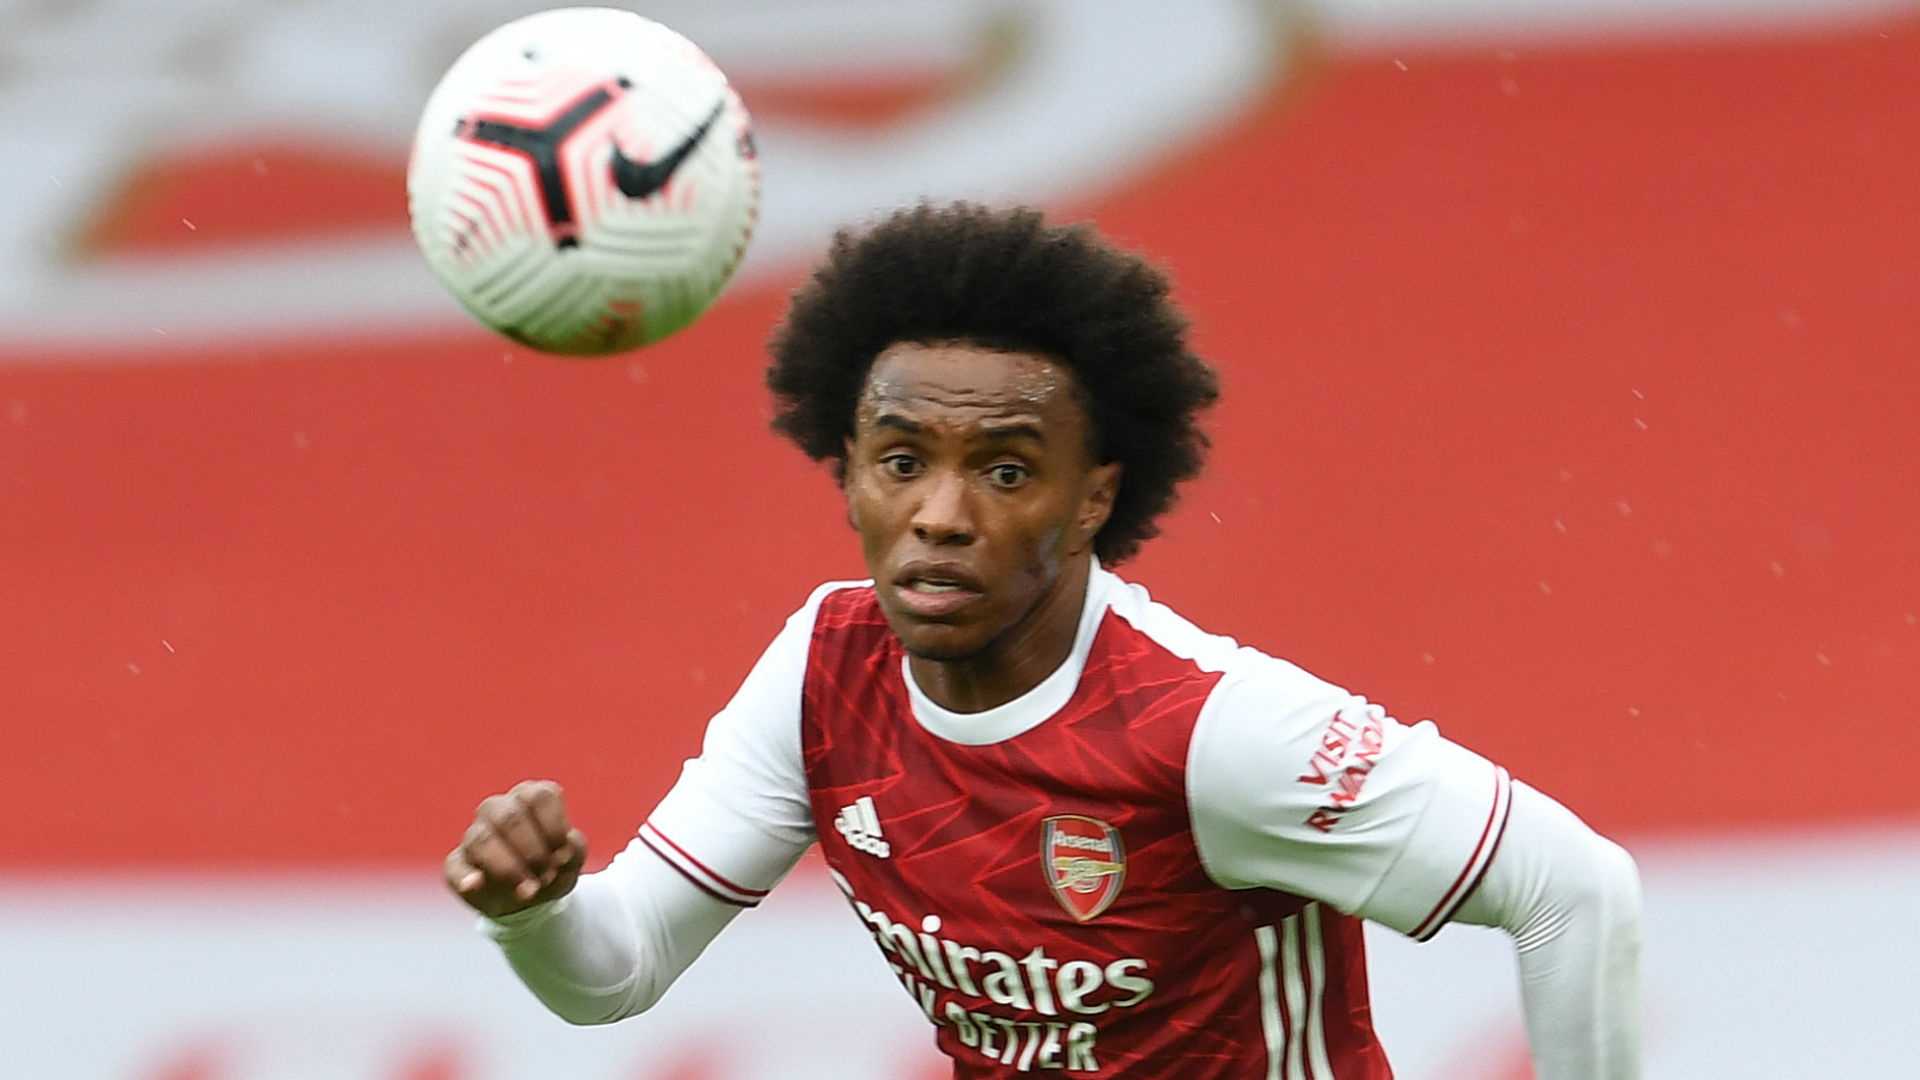 Arteta confident Arsenal will soon see the best of Willian